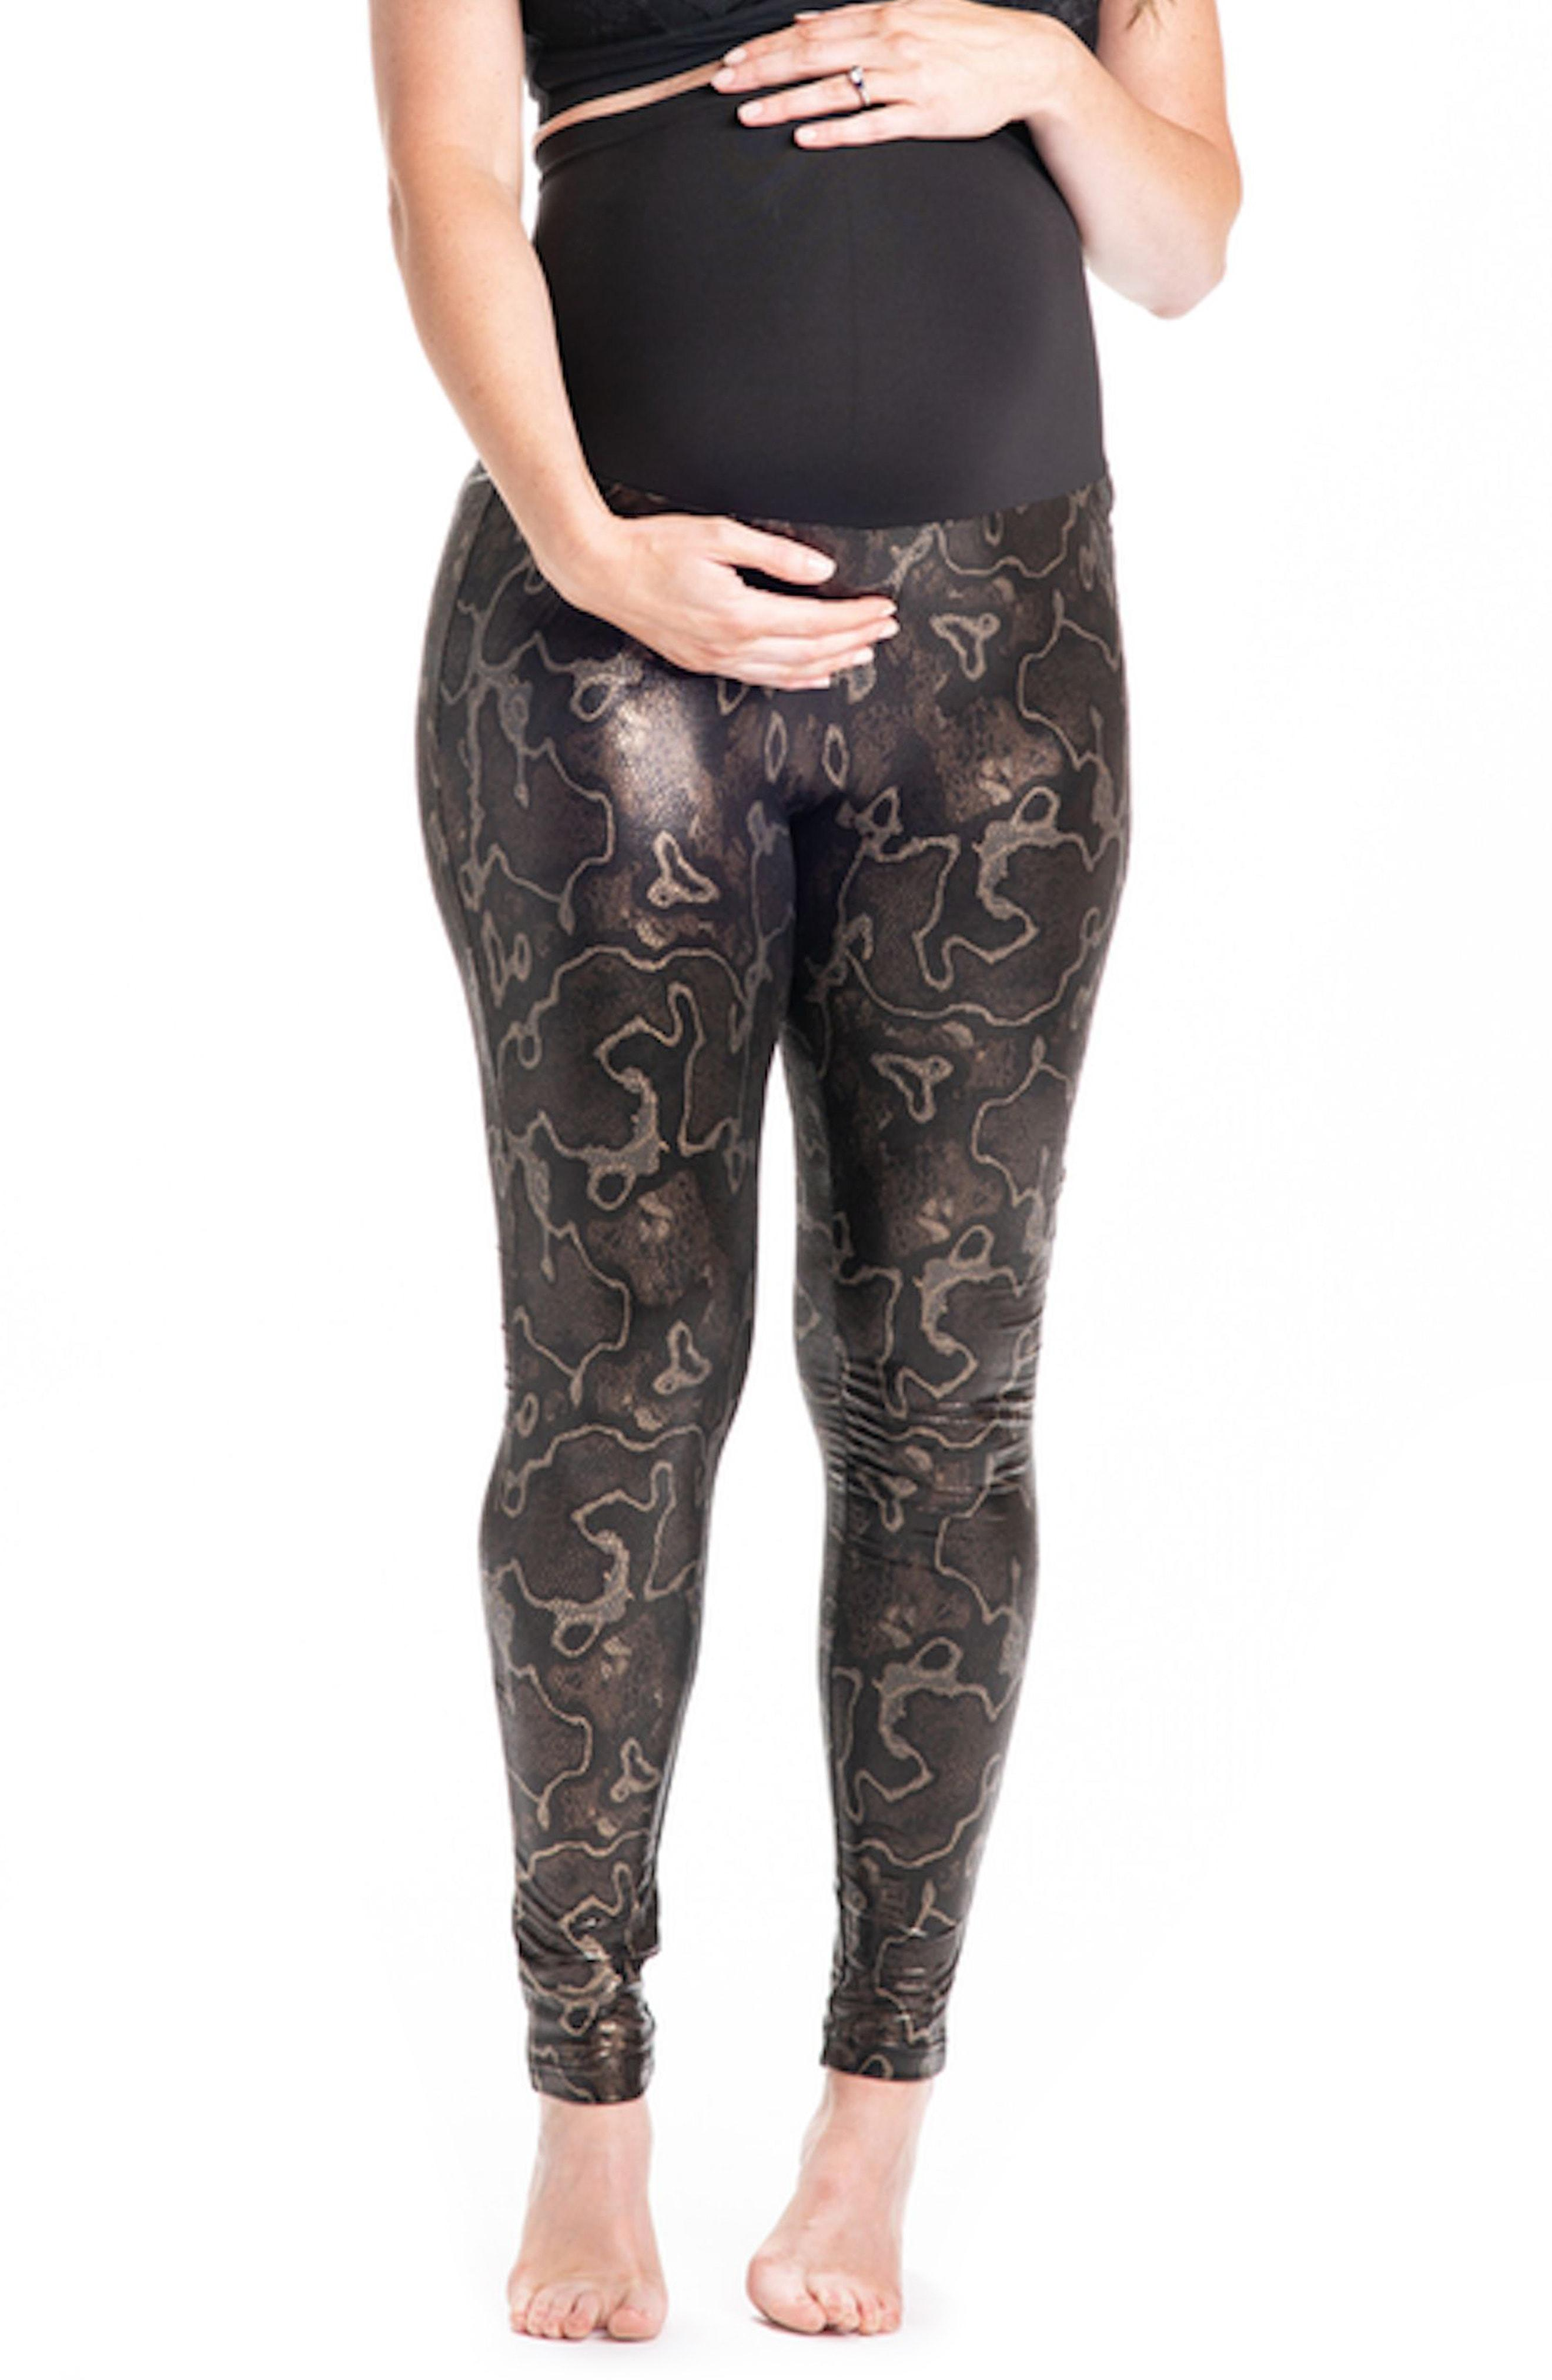 2a5ebec0e312c Lyst - PREGGO LEGGINGS Boa Print Maternity Leggings in Brown